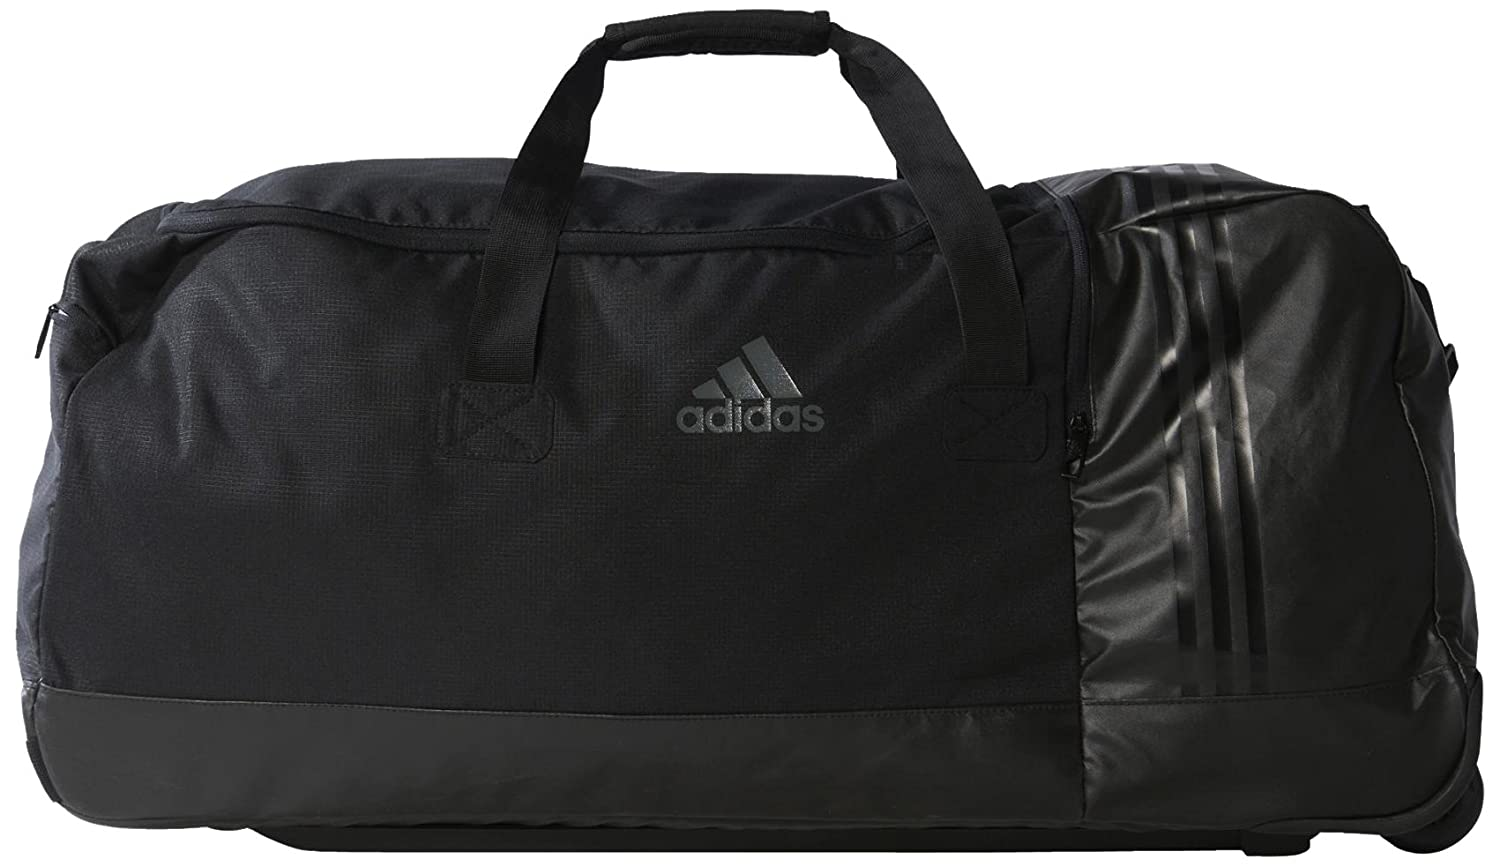 7614c764bb07 Adidas 3-Stripes Performance X-Large Duffle - Black Black Vista Grey ...